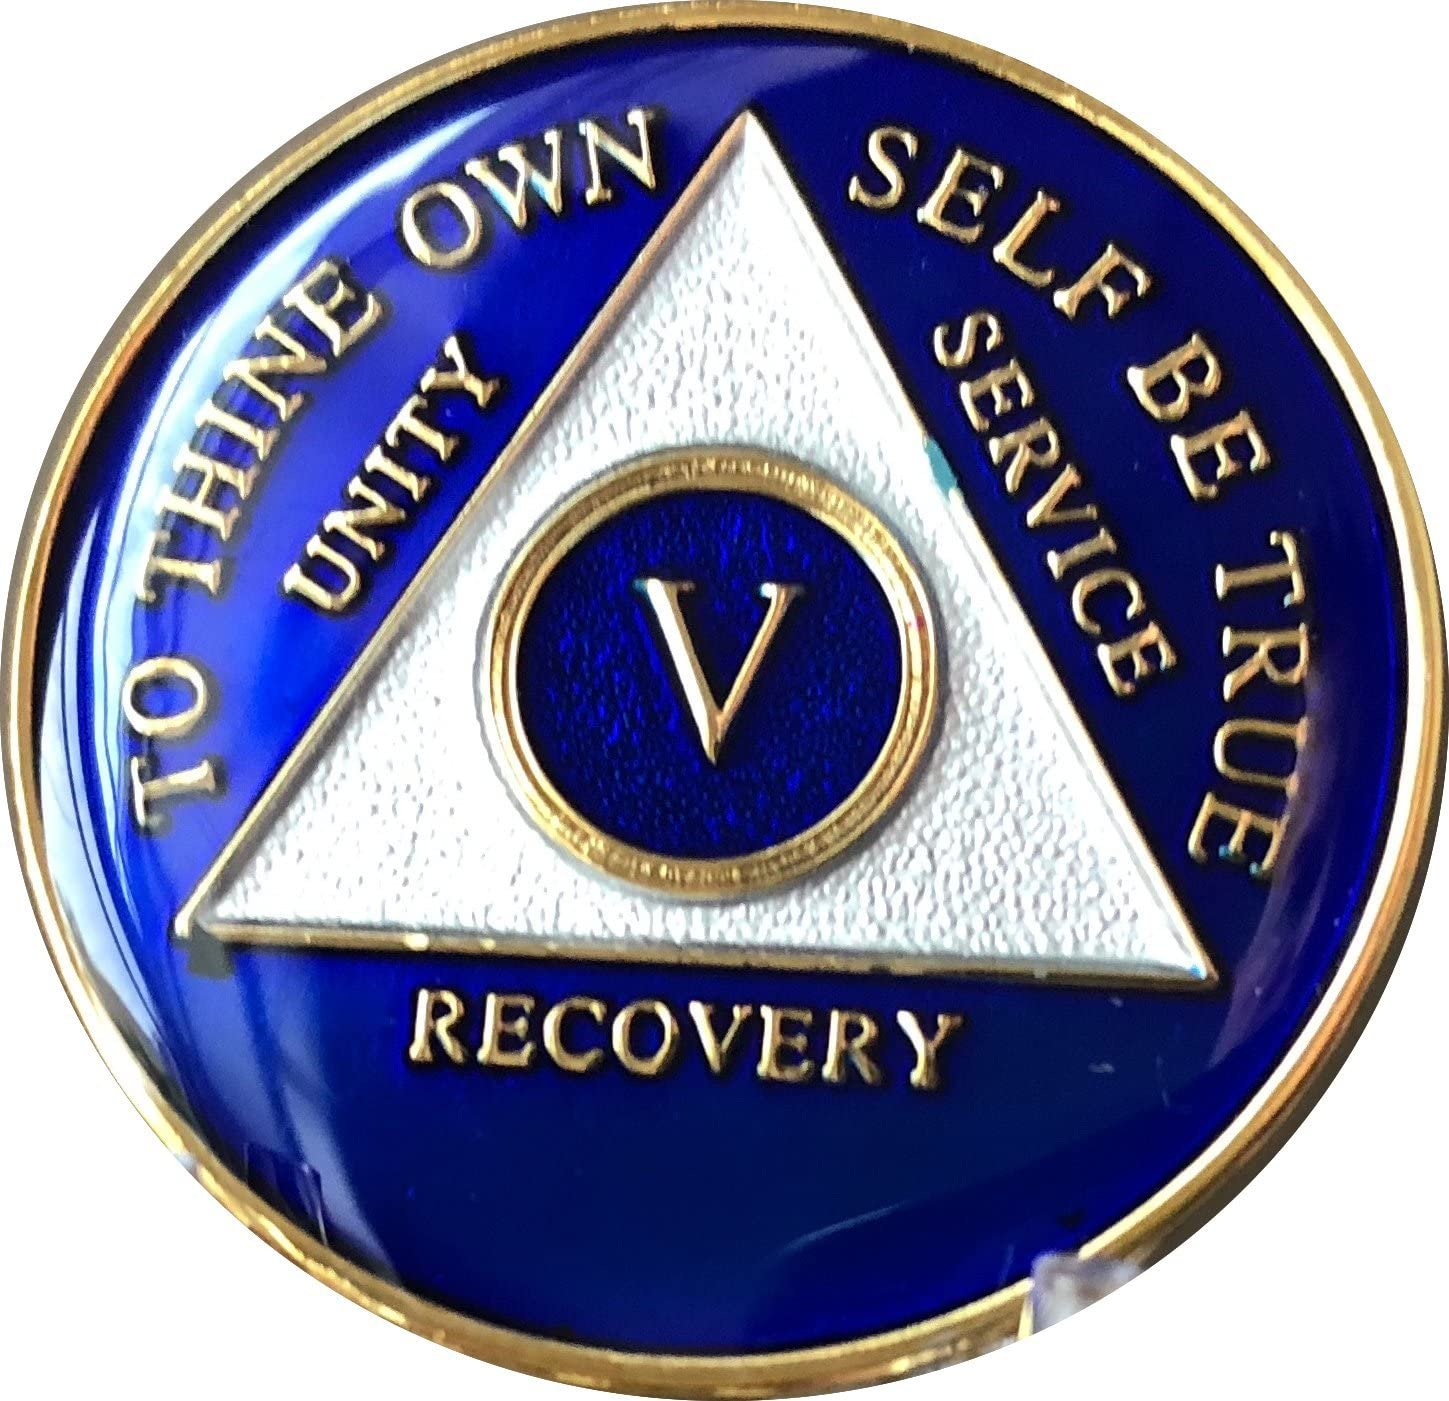 Recovery Mint 5 Year Blue Tri-Plate Alcoholics Anonymous Medalli